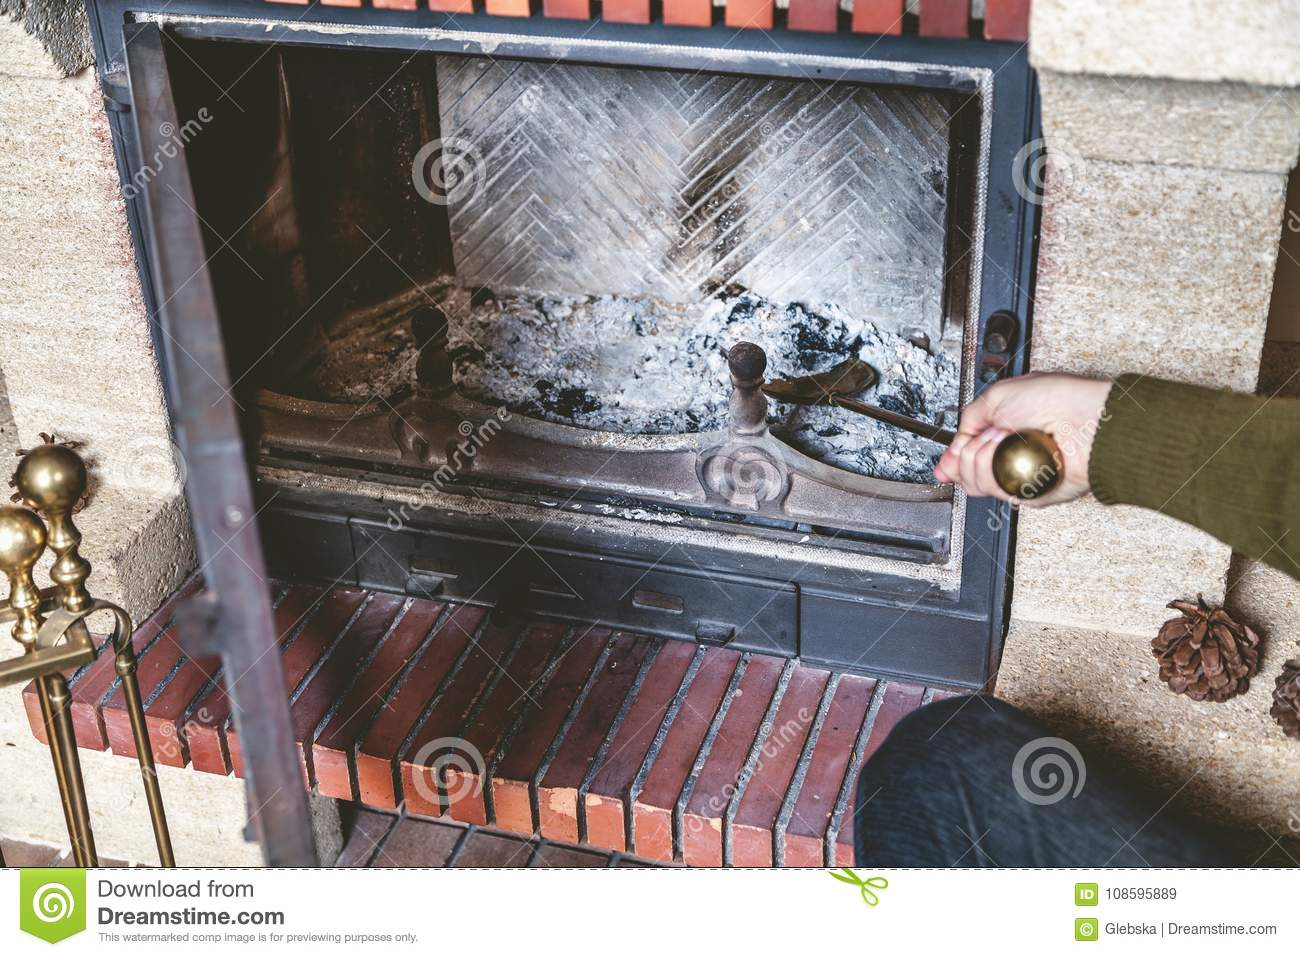 Cleaning A Fireplace Cleaning Fireplace Hand Holding Shovel With Ash Stock Image